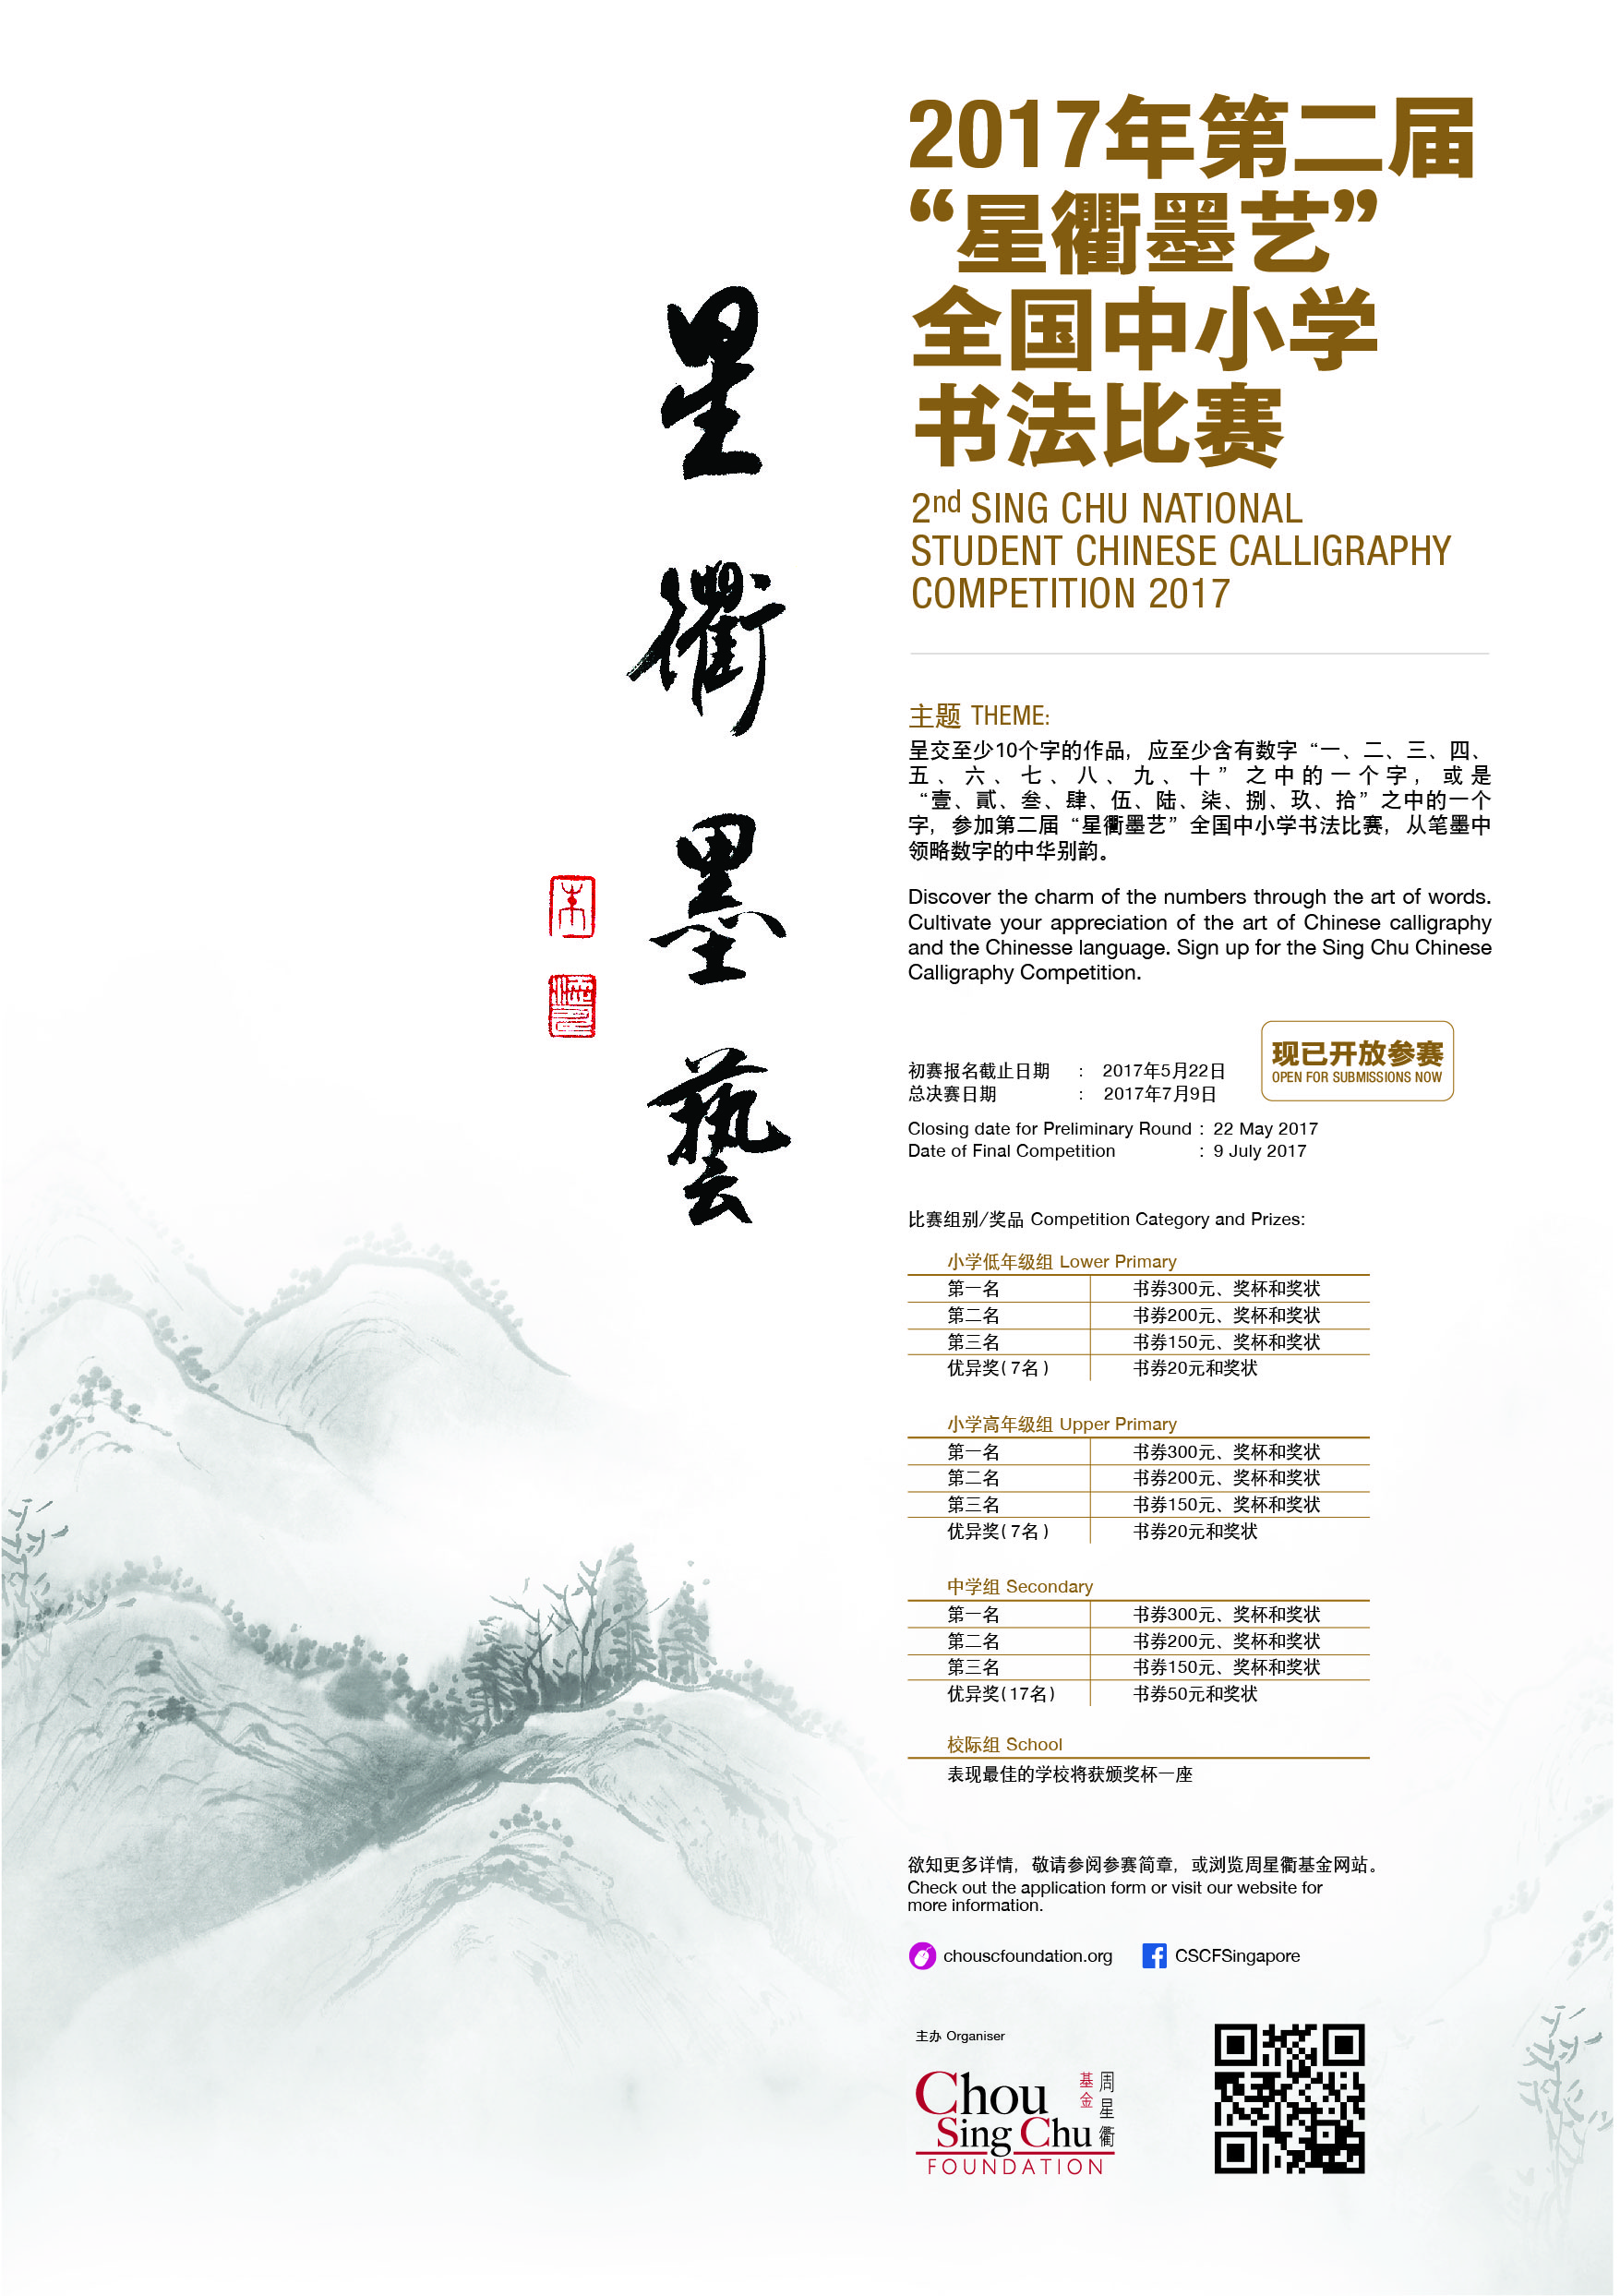 National Chinese Calligraphy Competition 2017 Chou Sing